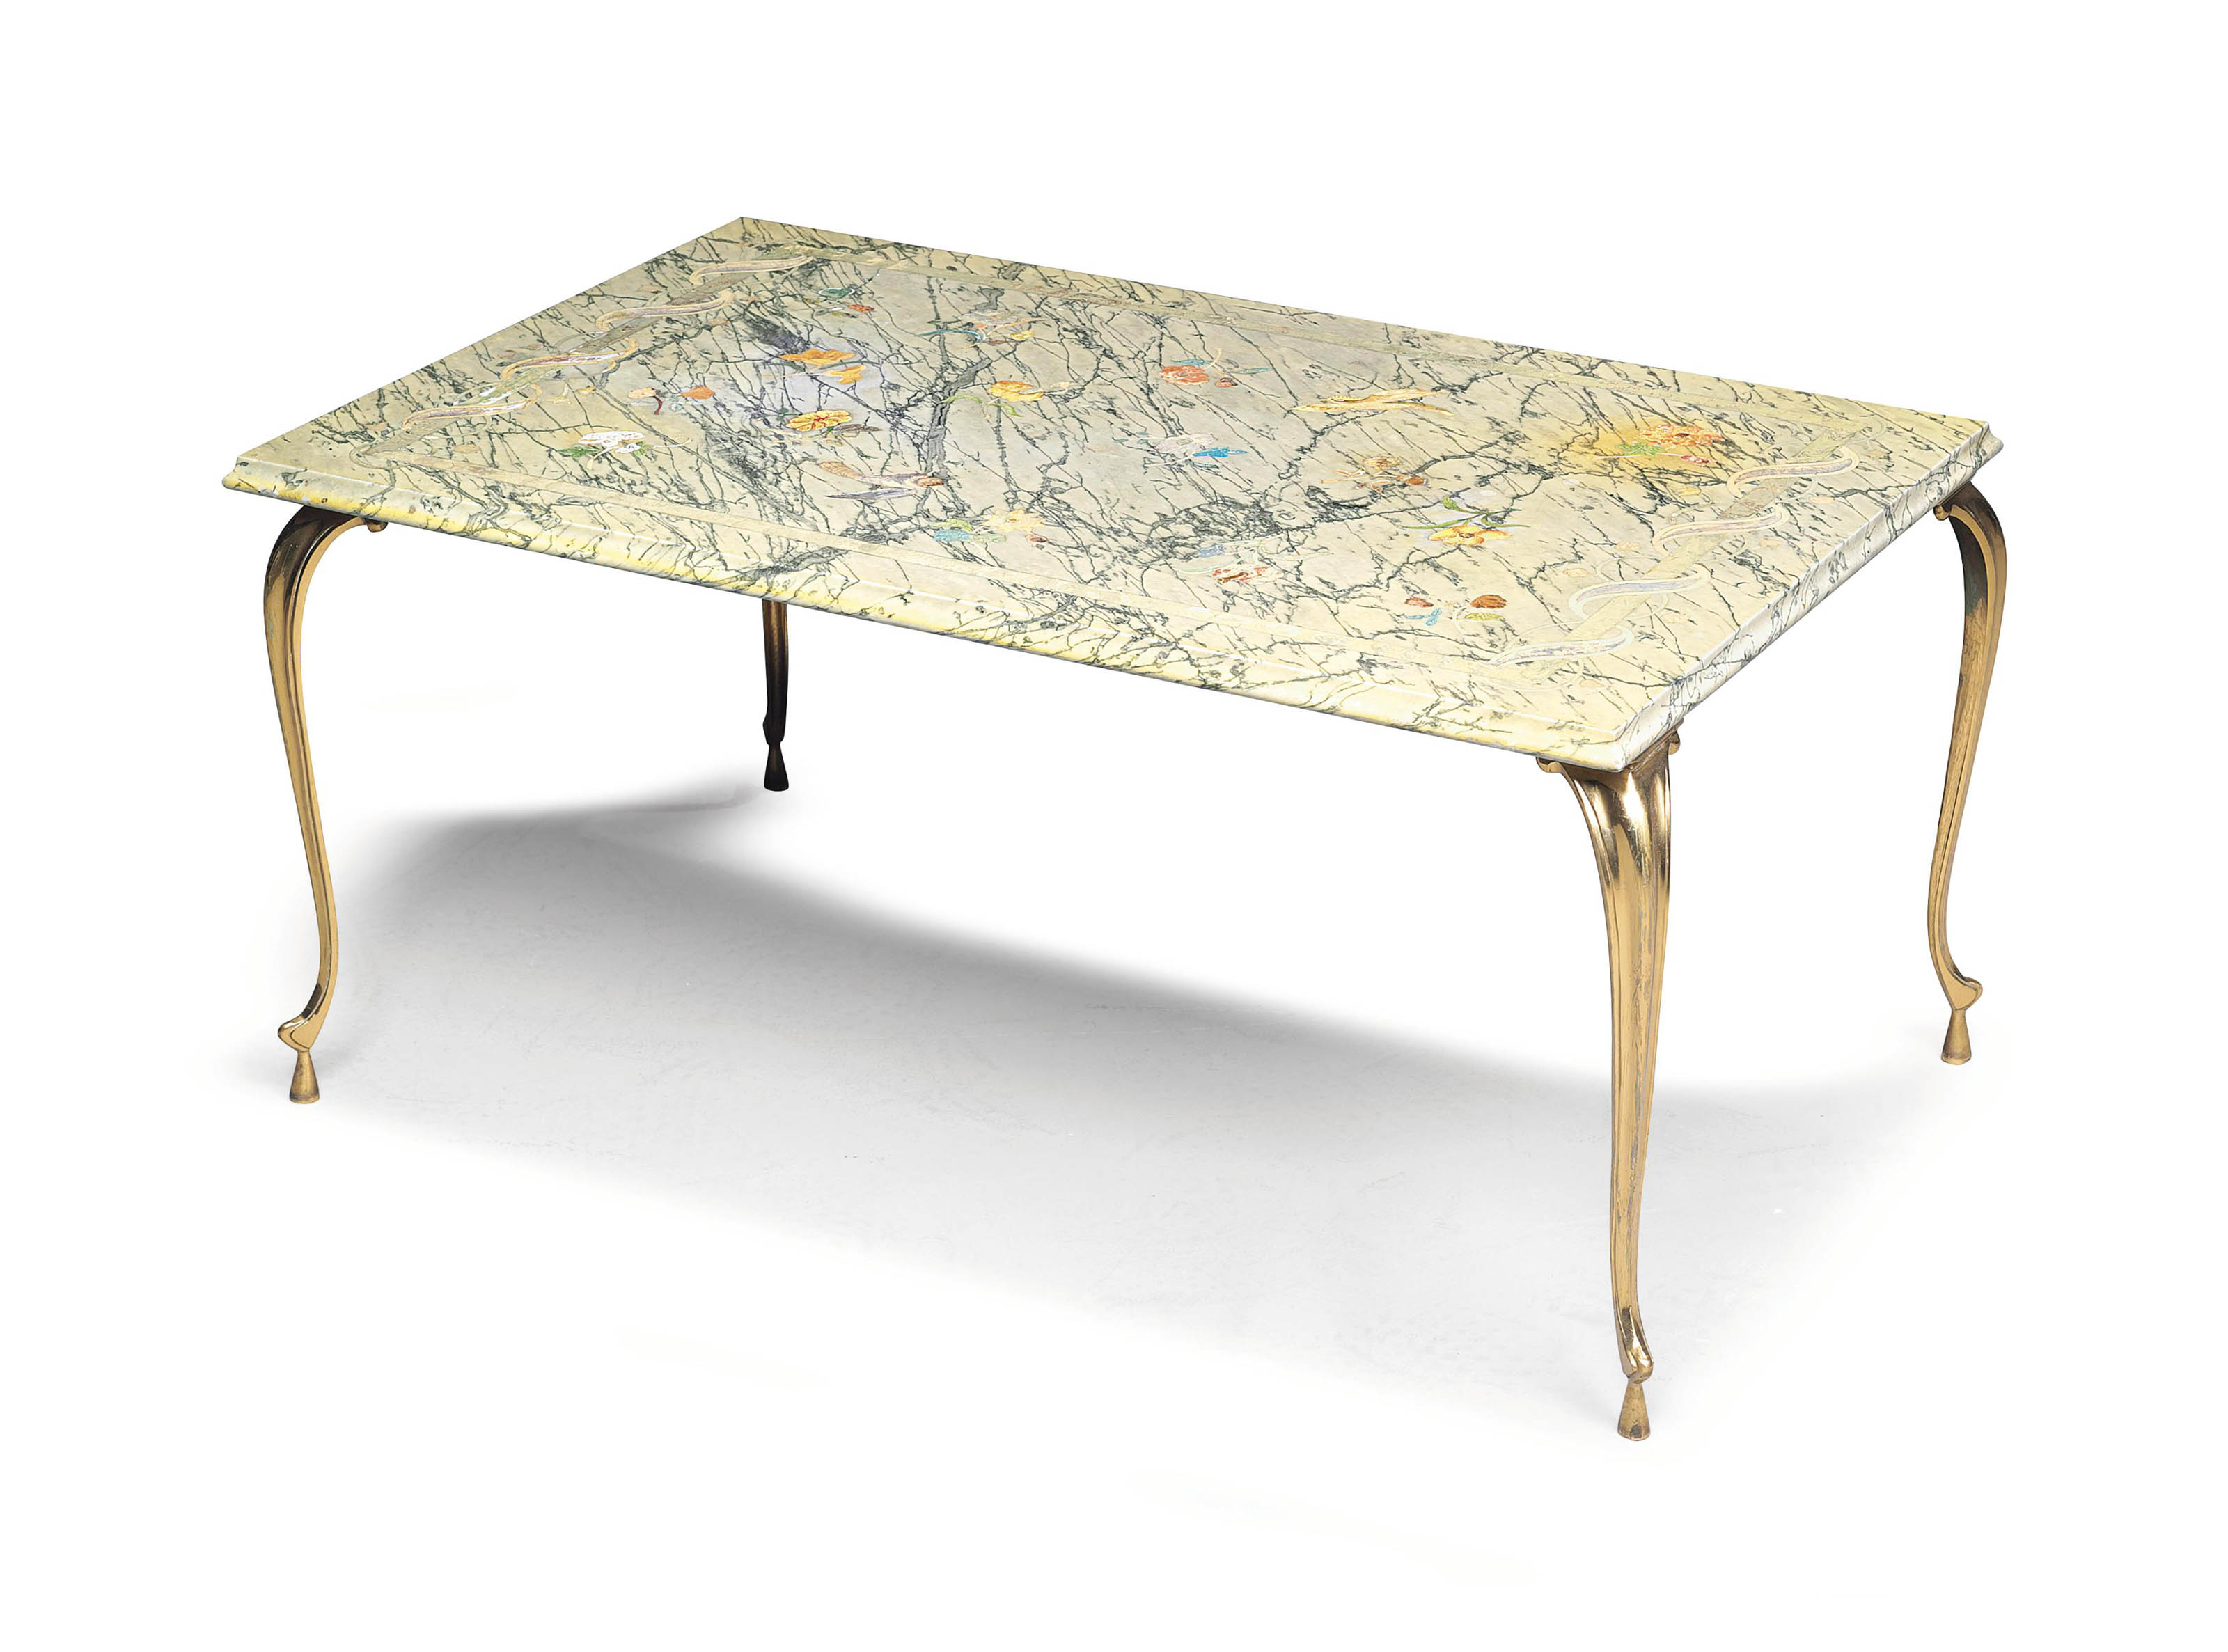 A GREEN-VARIEGATED AND INLAID MARBLE LOW TABLE